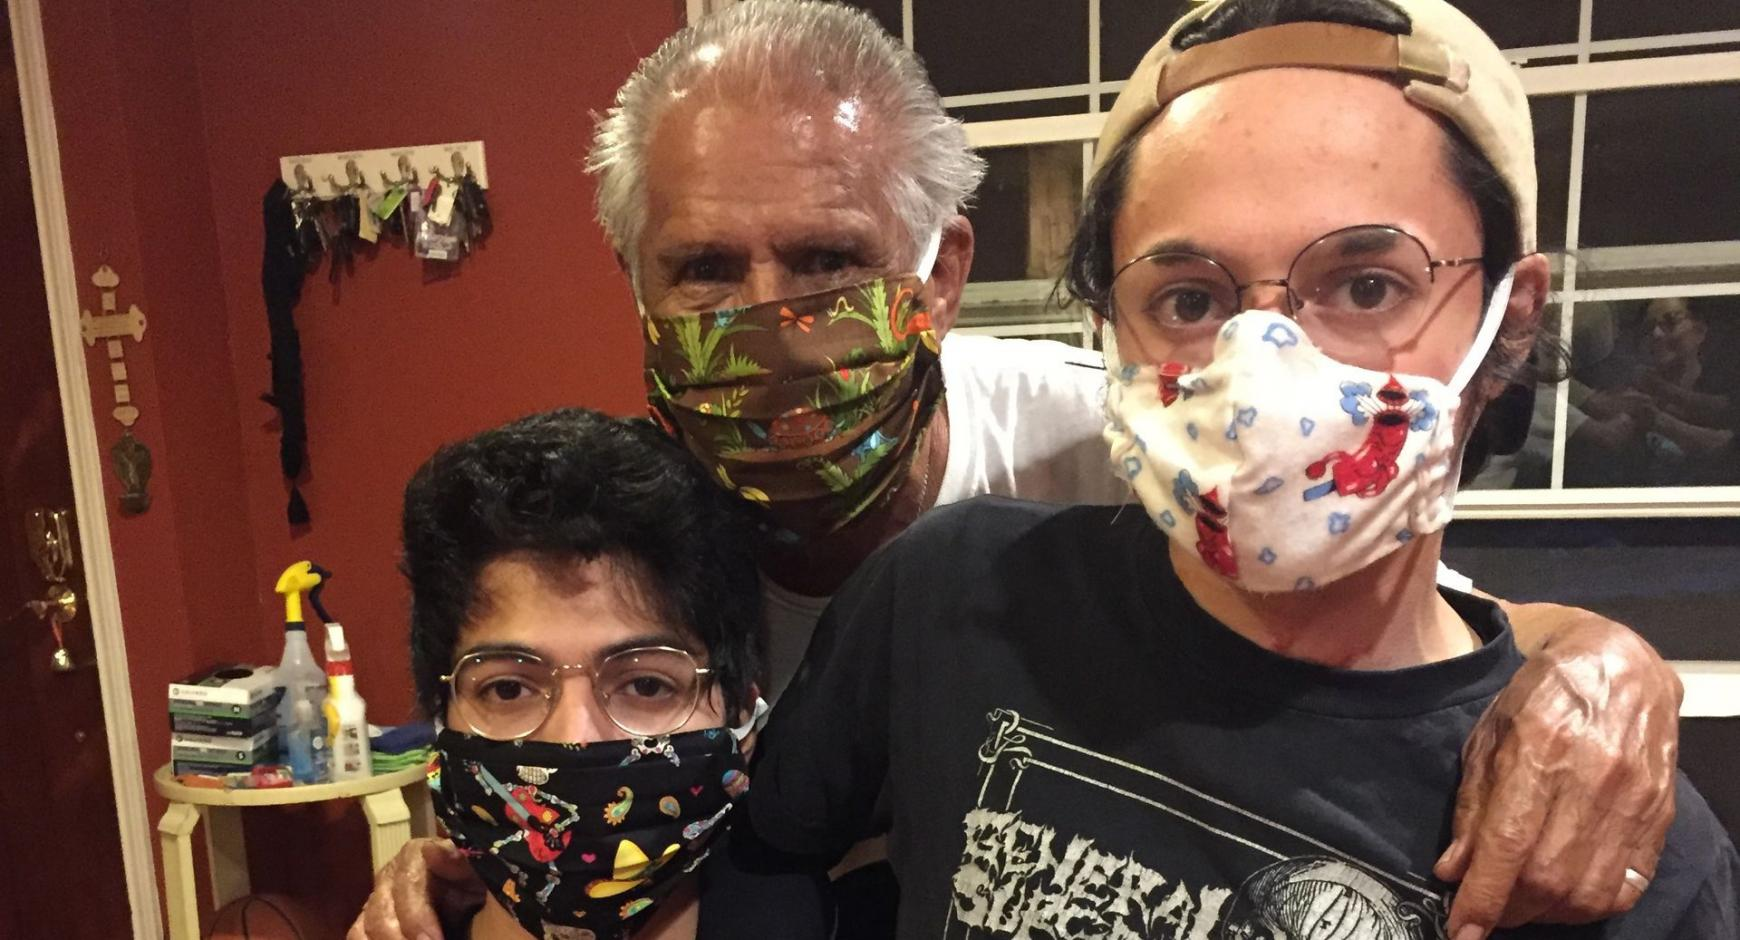 Rodriguez family, three individuals of varying ages, wearing masks